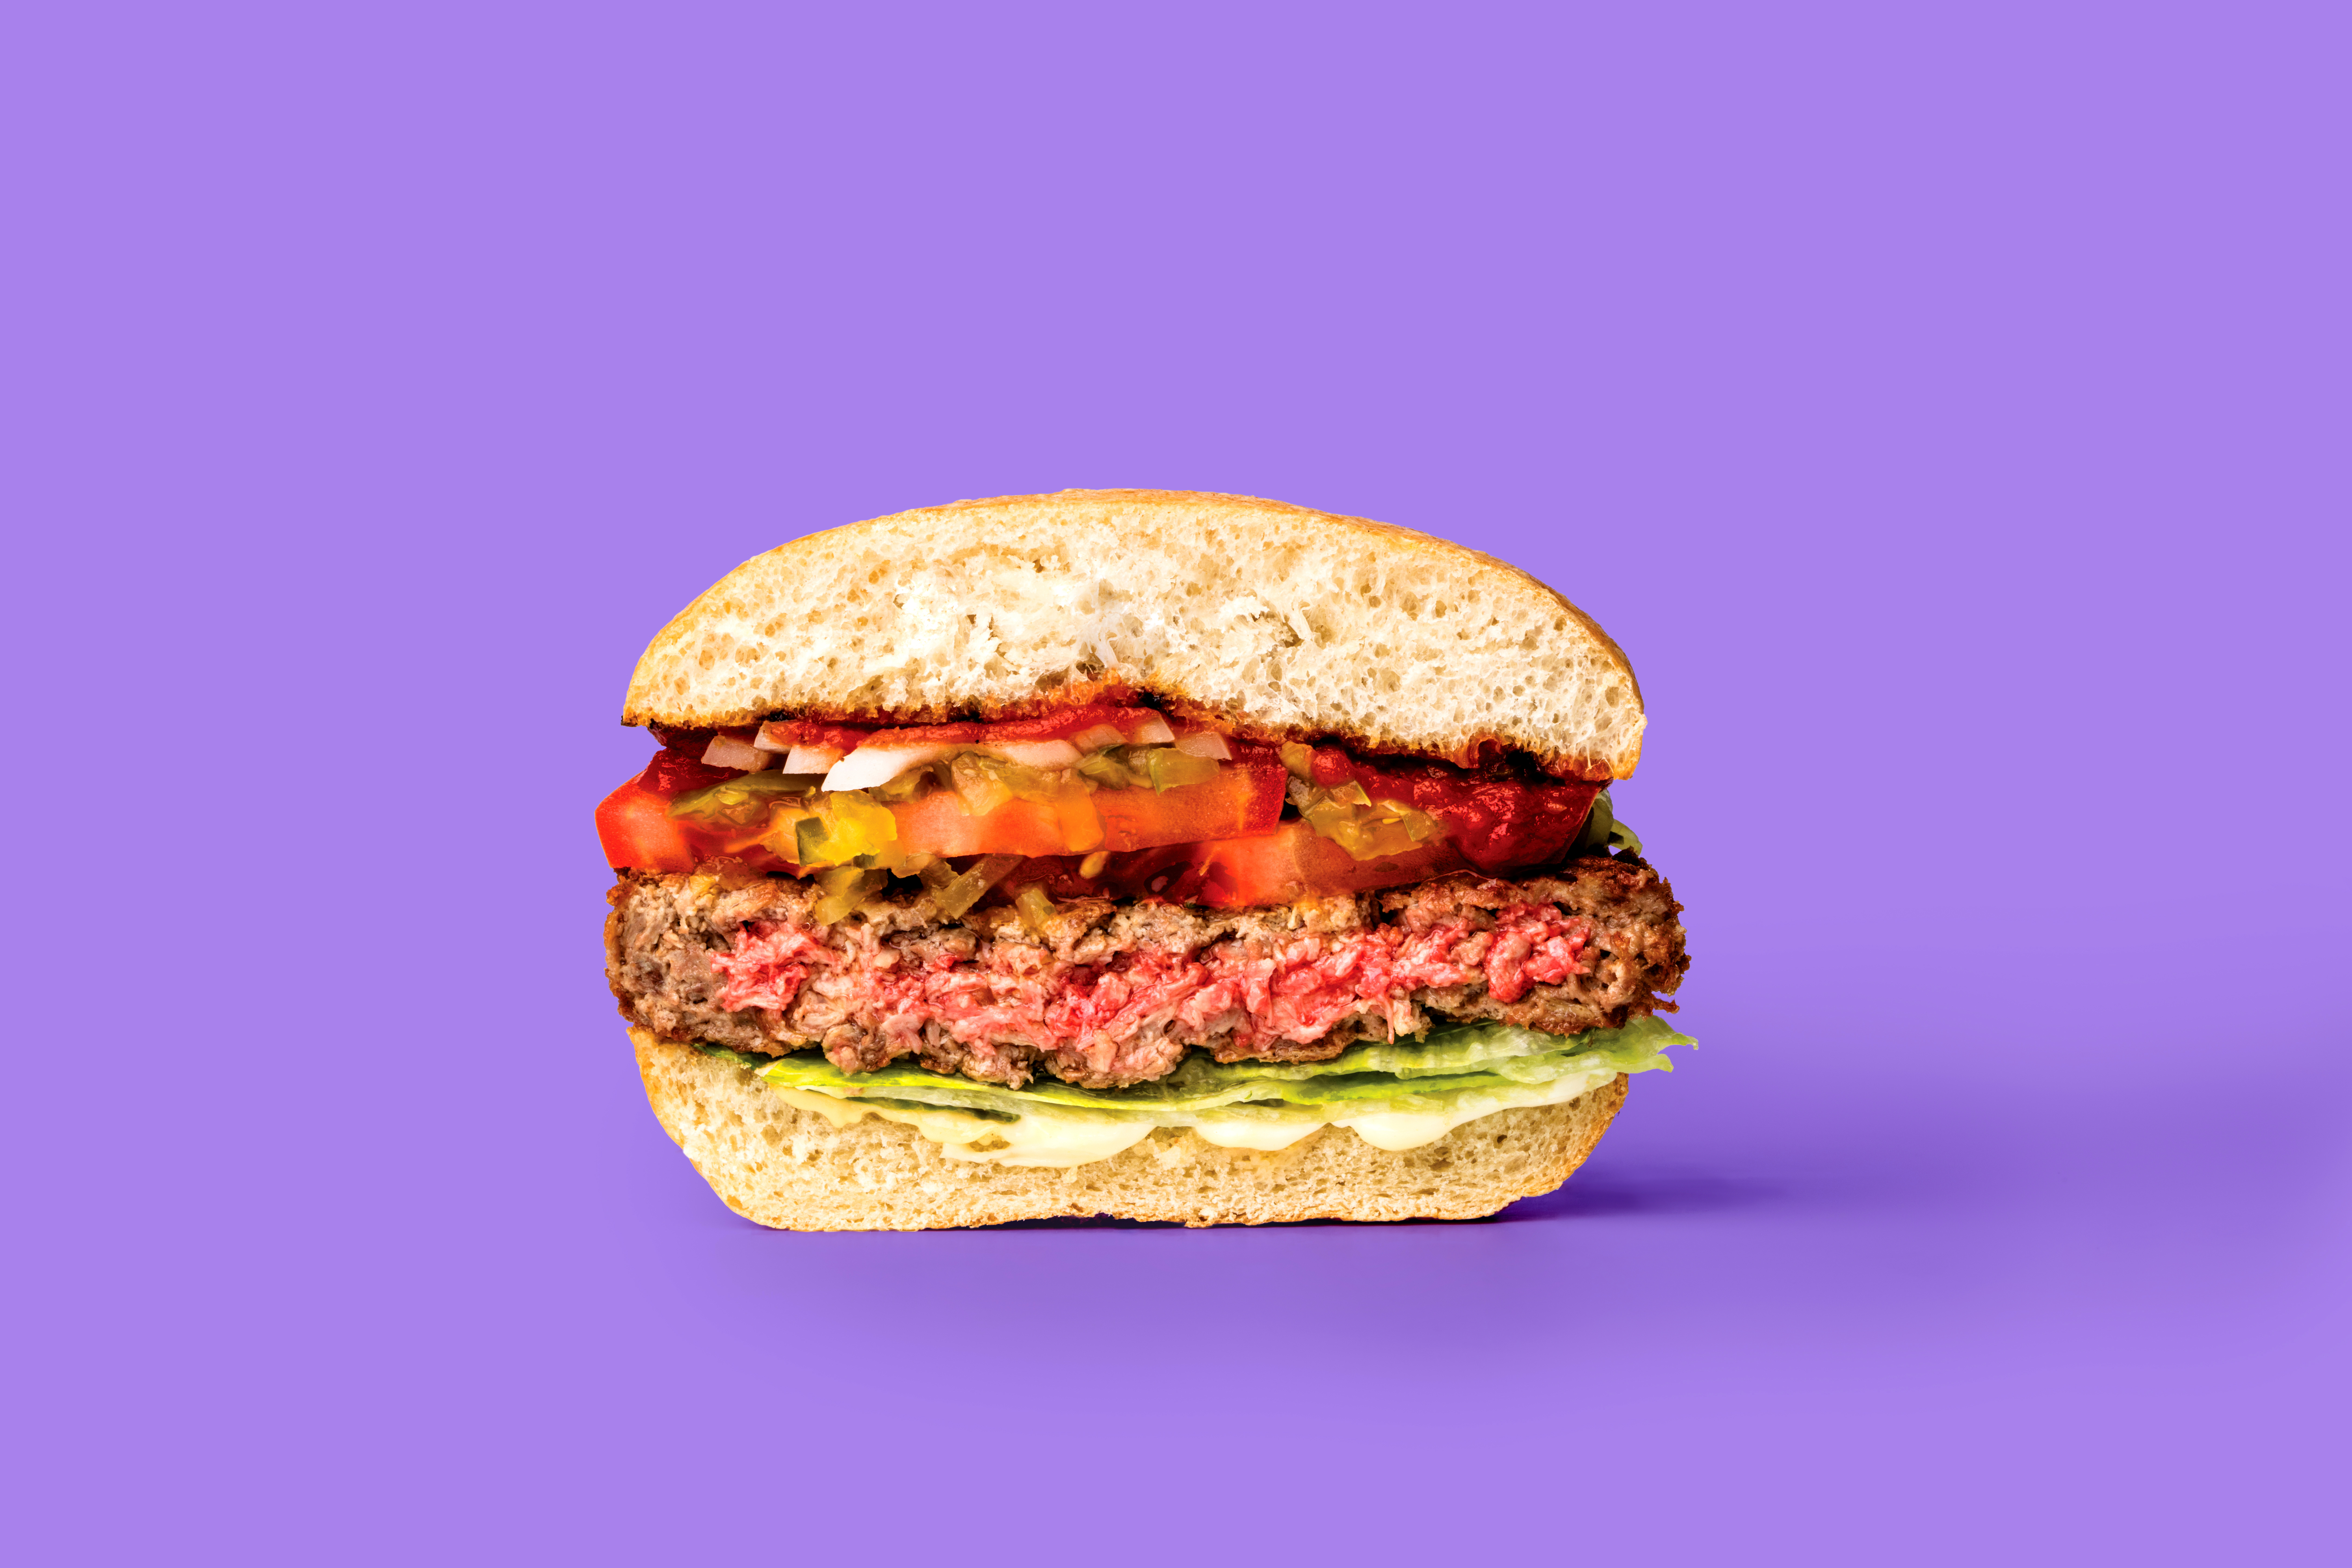 Fake Meat Is Here to Stay, So Stop Treating It Like a Gimmick